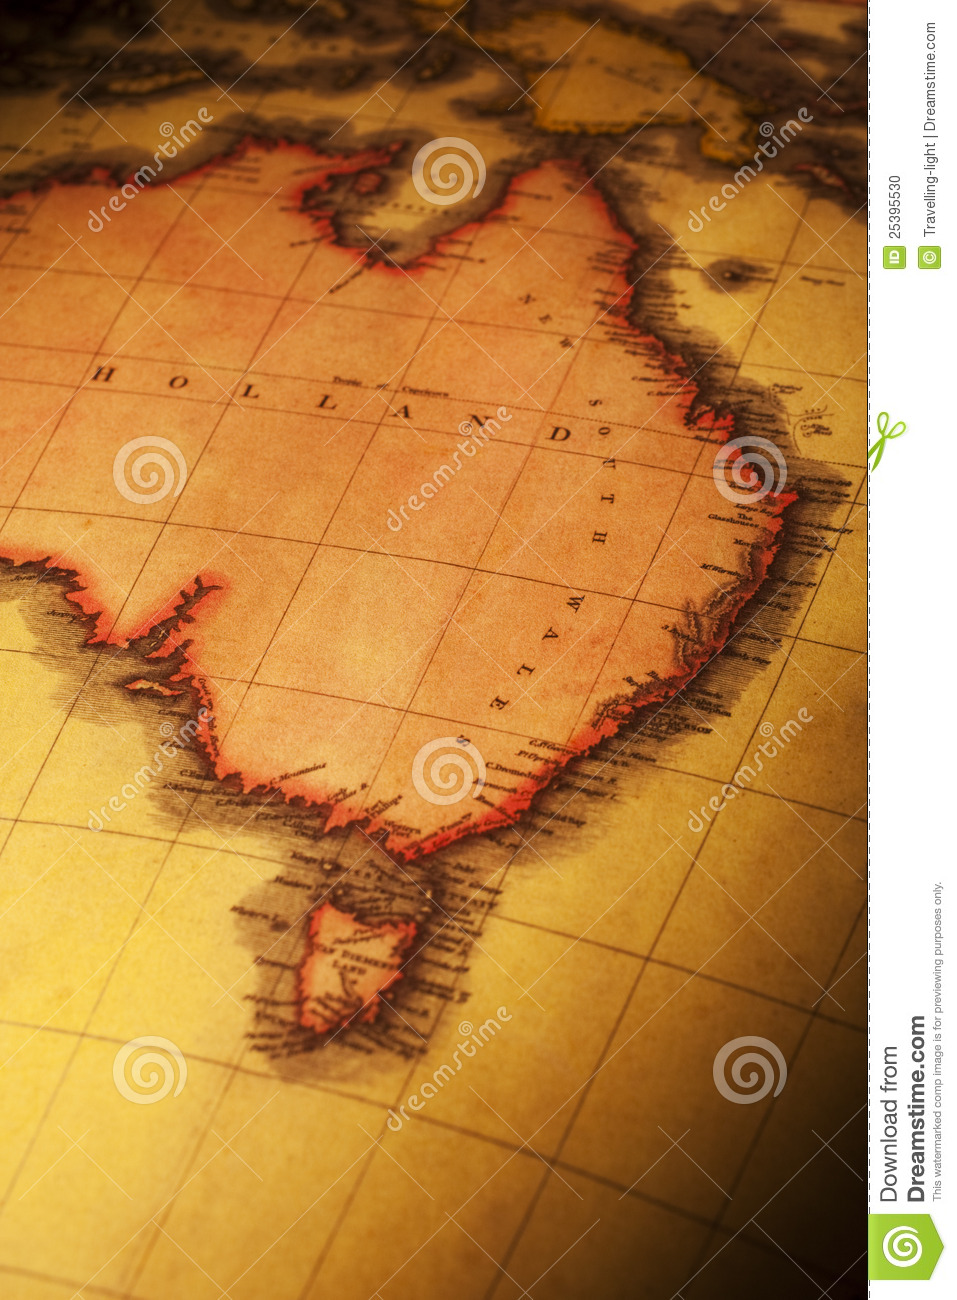 Old map of east and north australia stock photo image of download comp gumiabroncs Choice Image